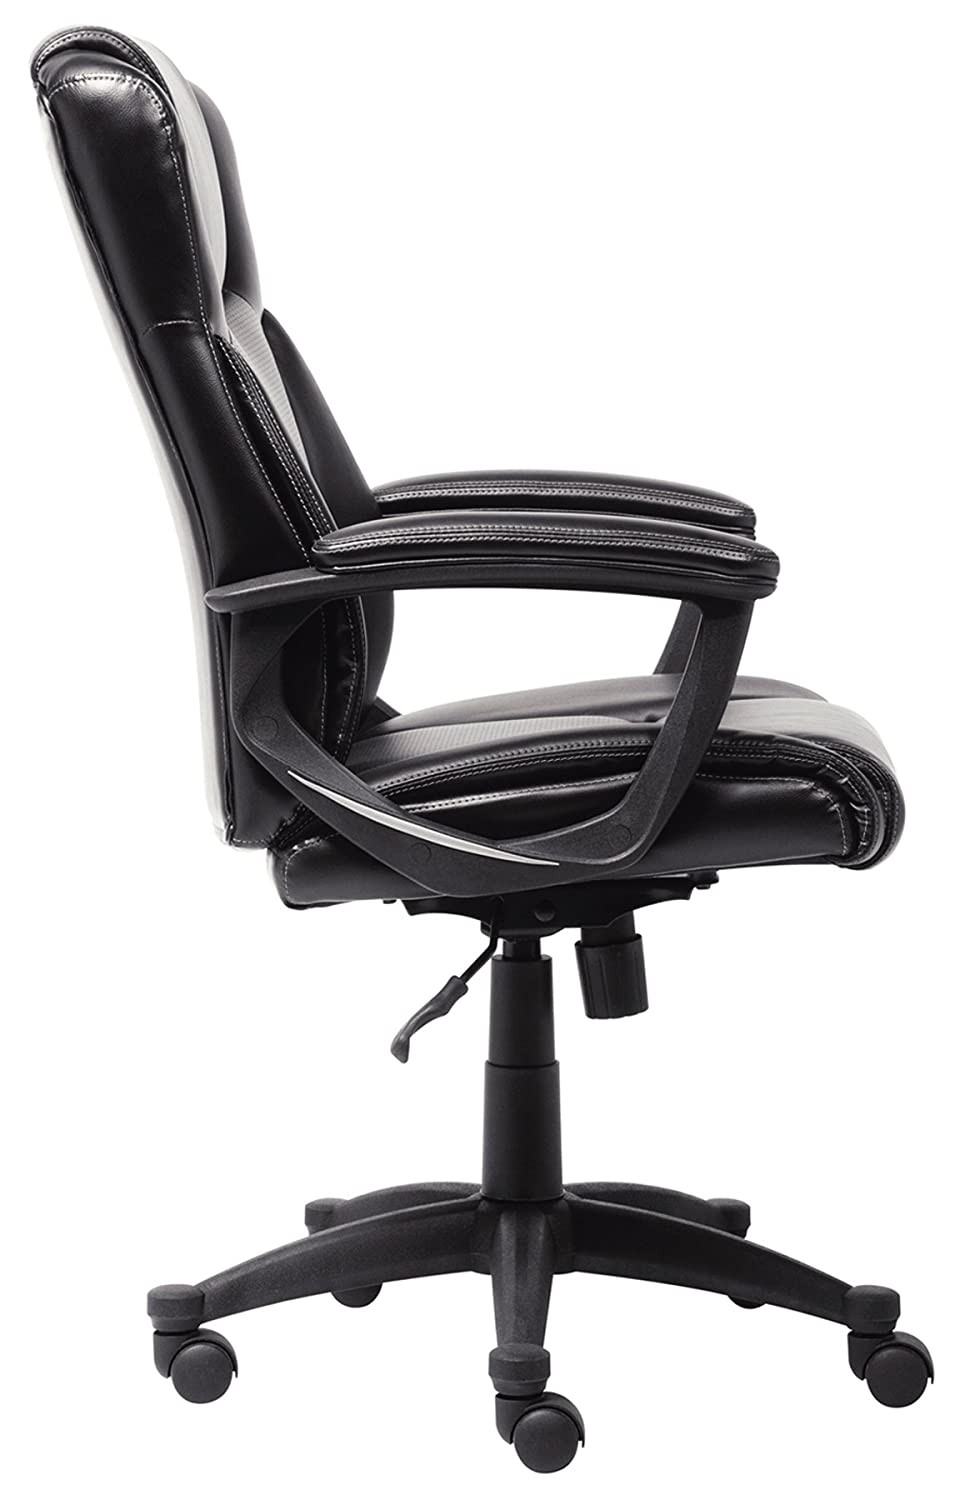 serta of foam with service size colors big multiple chair memory cool design office orthopedic decoration chairs furniture boost jeep executive full commercial reviews productivity beautyrest leather walmart computer customer to air aeron best turquoise home tall bonded sealy your posturepedic